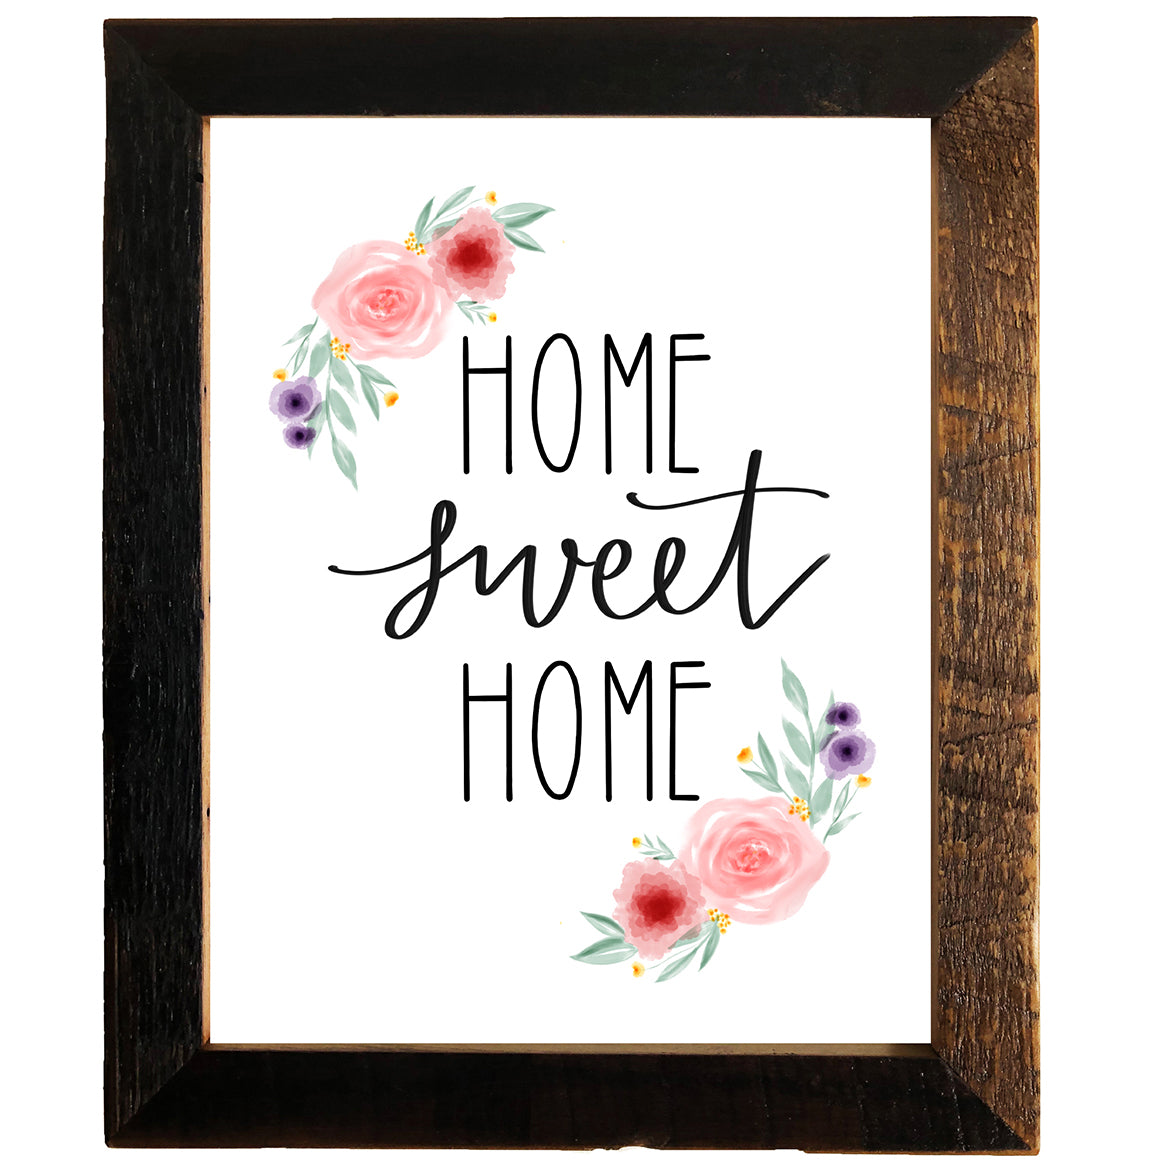 Home Sweet Home Sign 11x14 Reclaimed Wood Frame Rustic Red Door Co